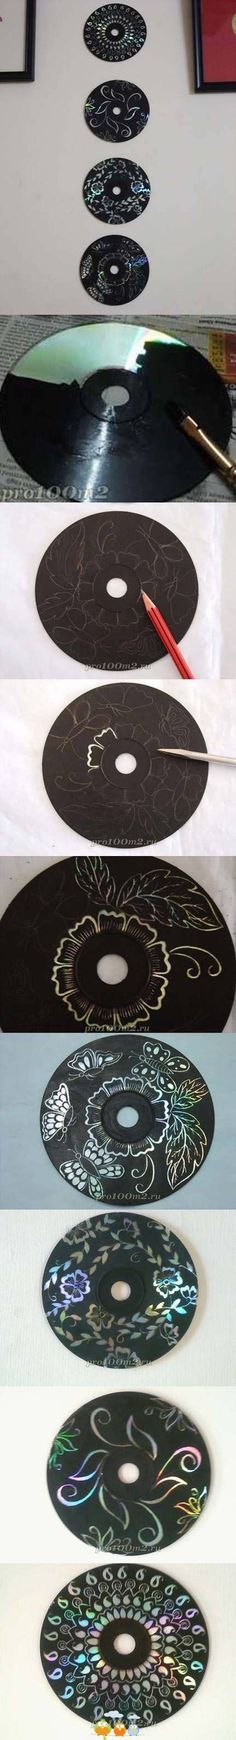 CD Scratch art...as mandala? Tried with acrylic paint and spray paint. Didn't work so well, want to try it again.